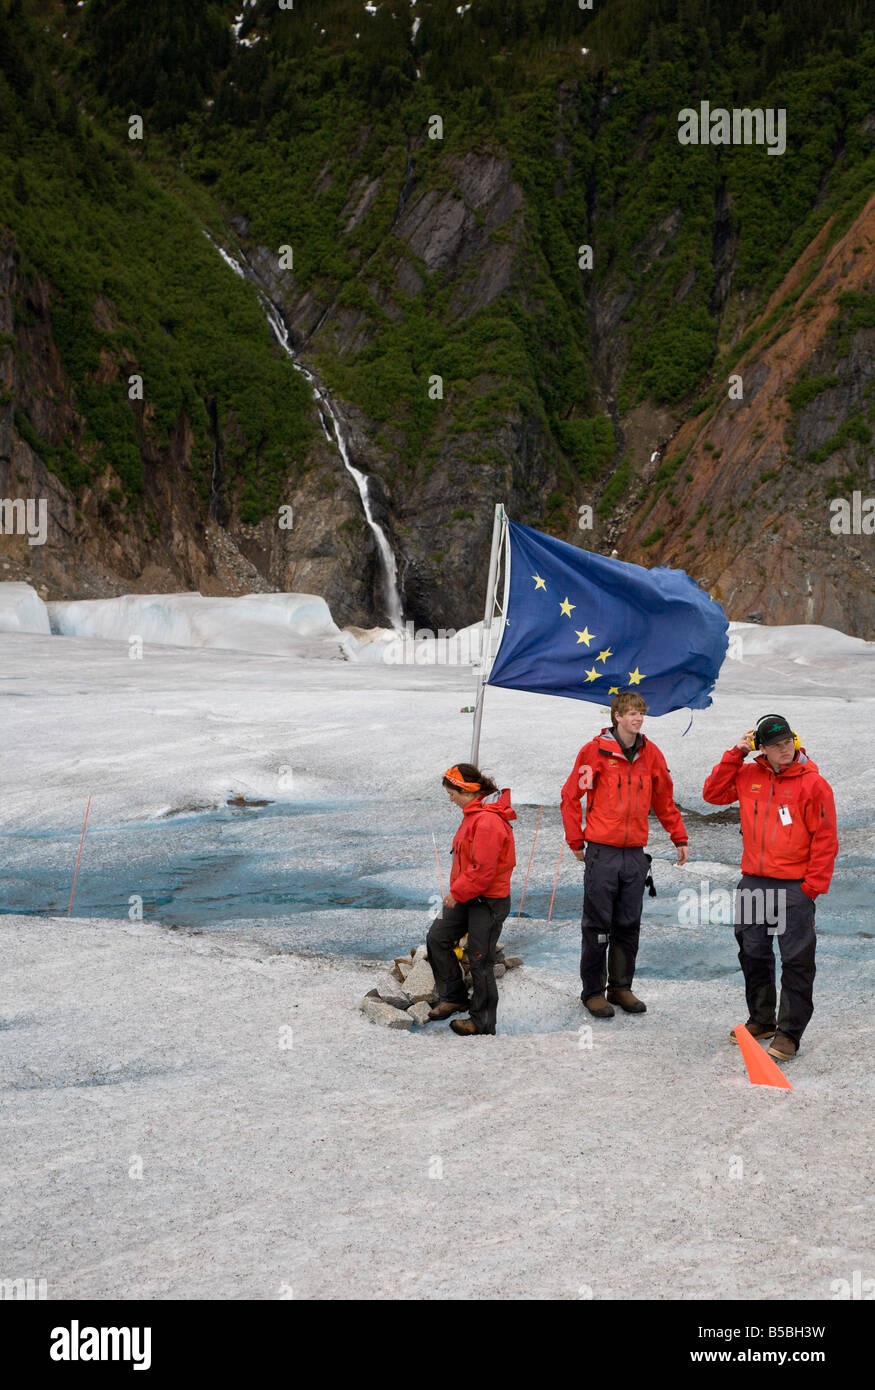 Three helicopter tour guides at base camp on Mendenhall Glacier near Juneau, Alaska - Stock Image